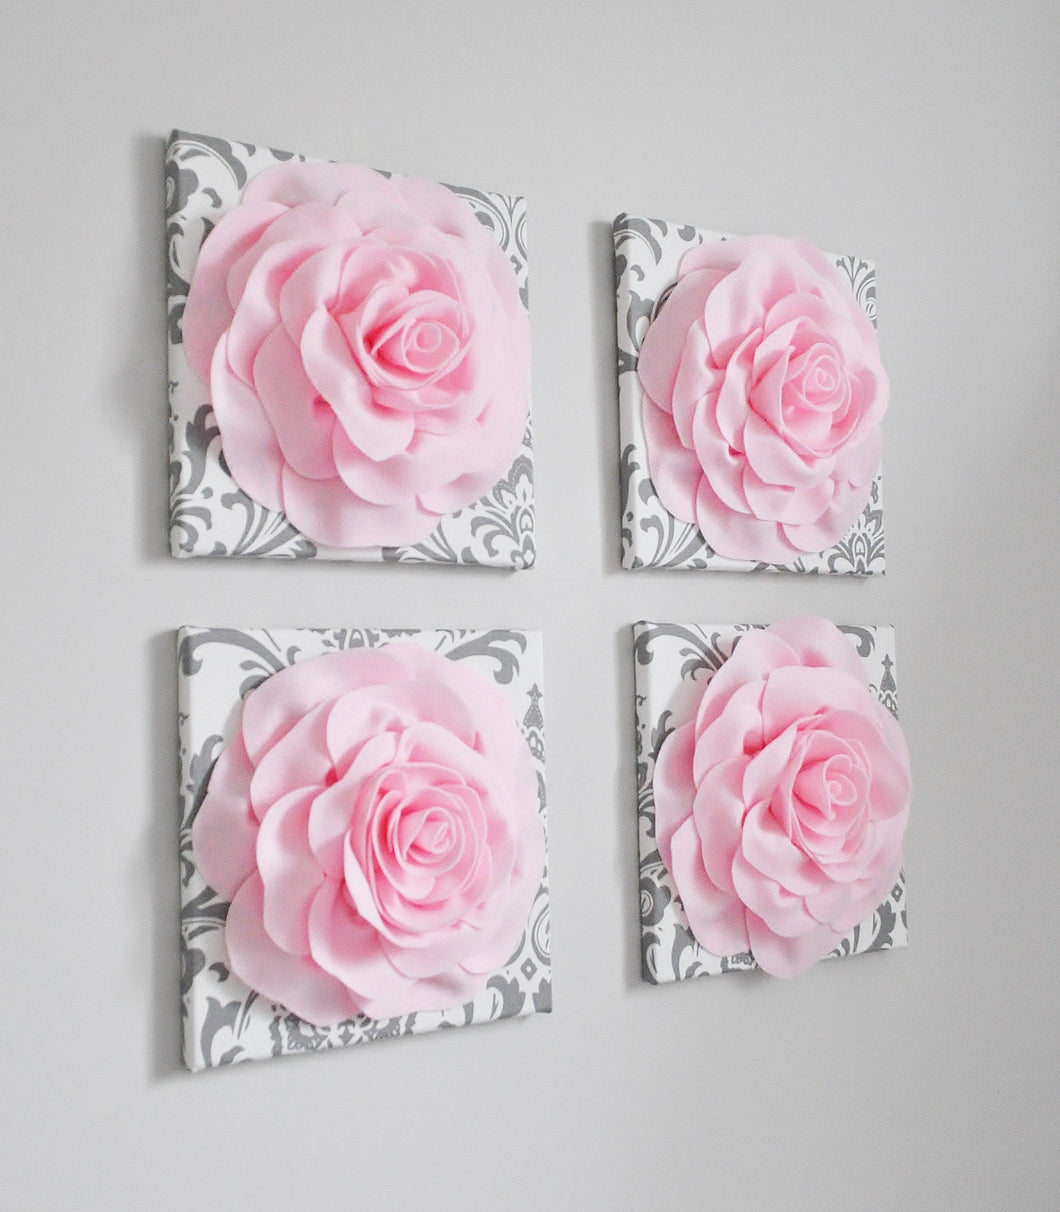 Light Pink Wall Decor Rose Wall Art Set of Four - Daisy Manor